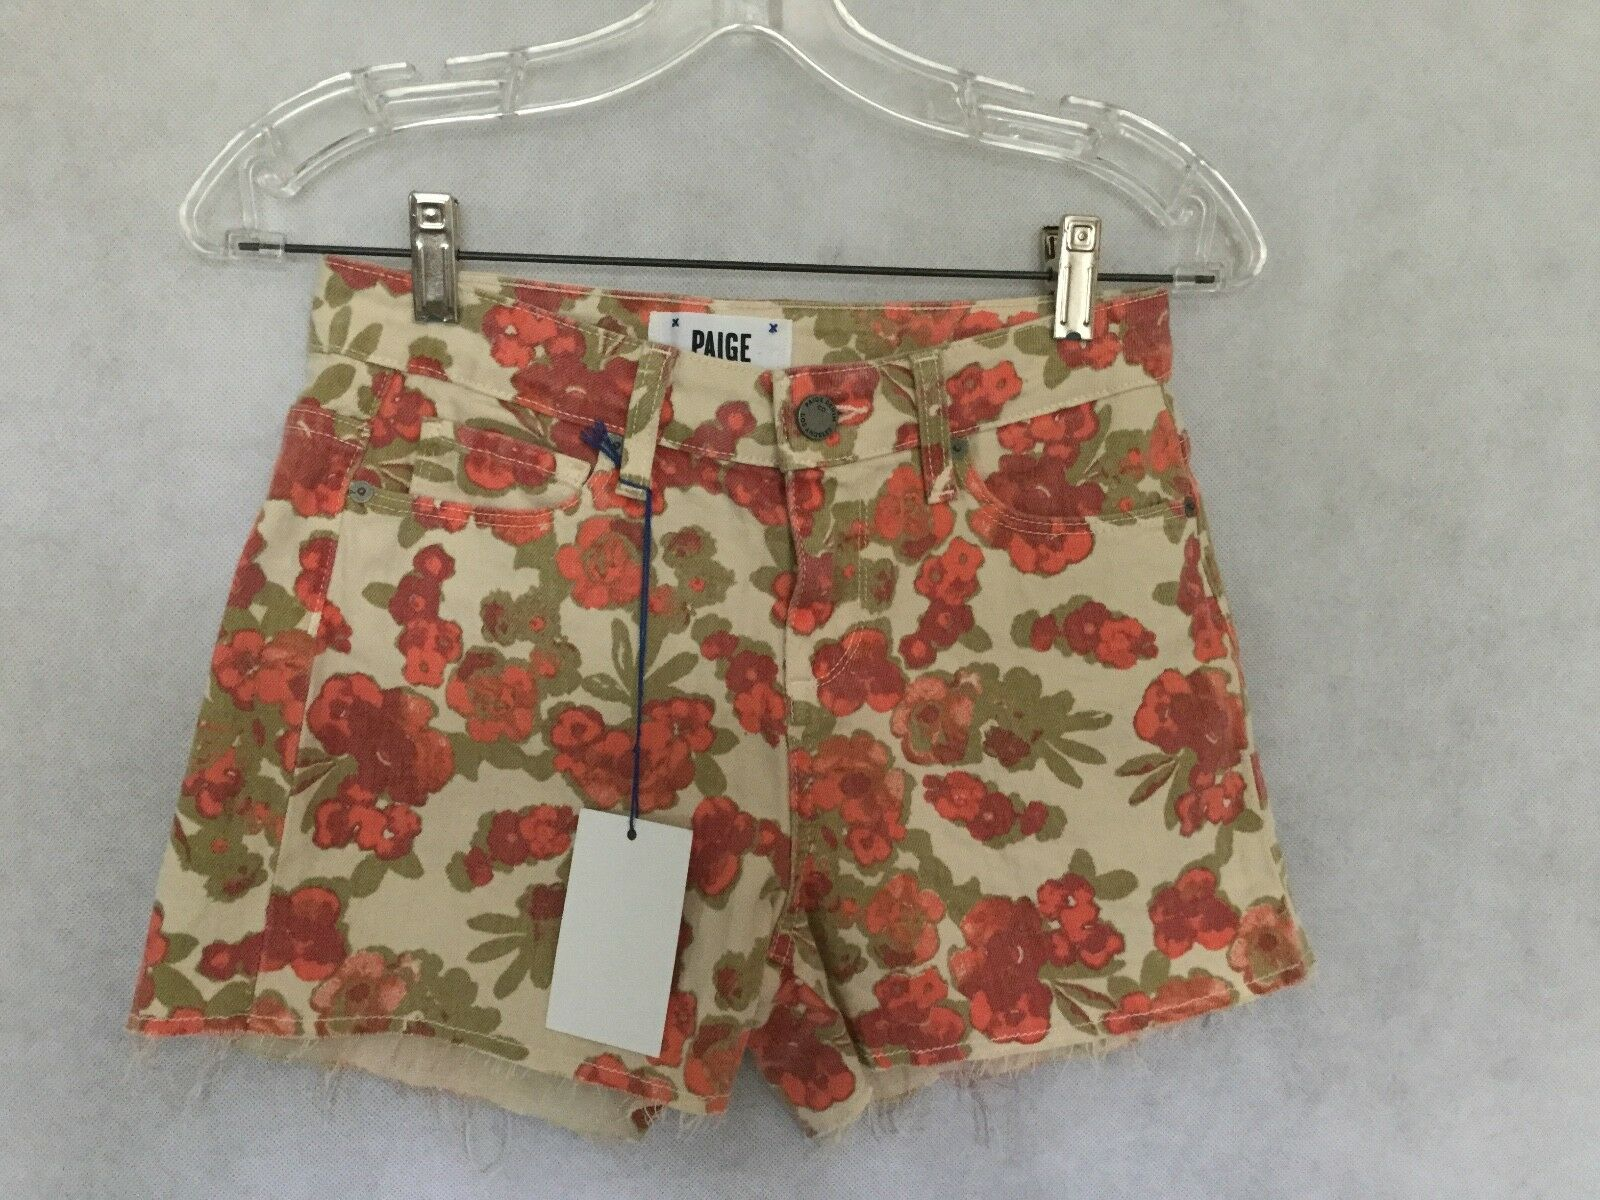 NWT Paige - 'Lola' Shorts - High Rise - Cut Off - Floral Print - Size 25